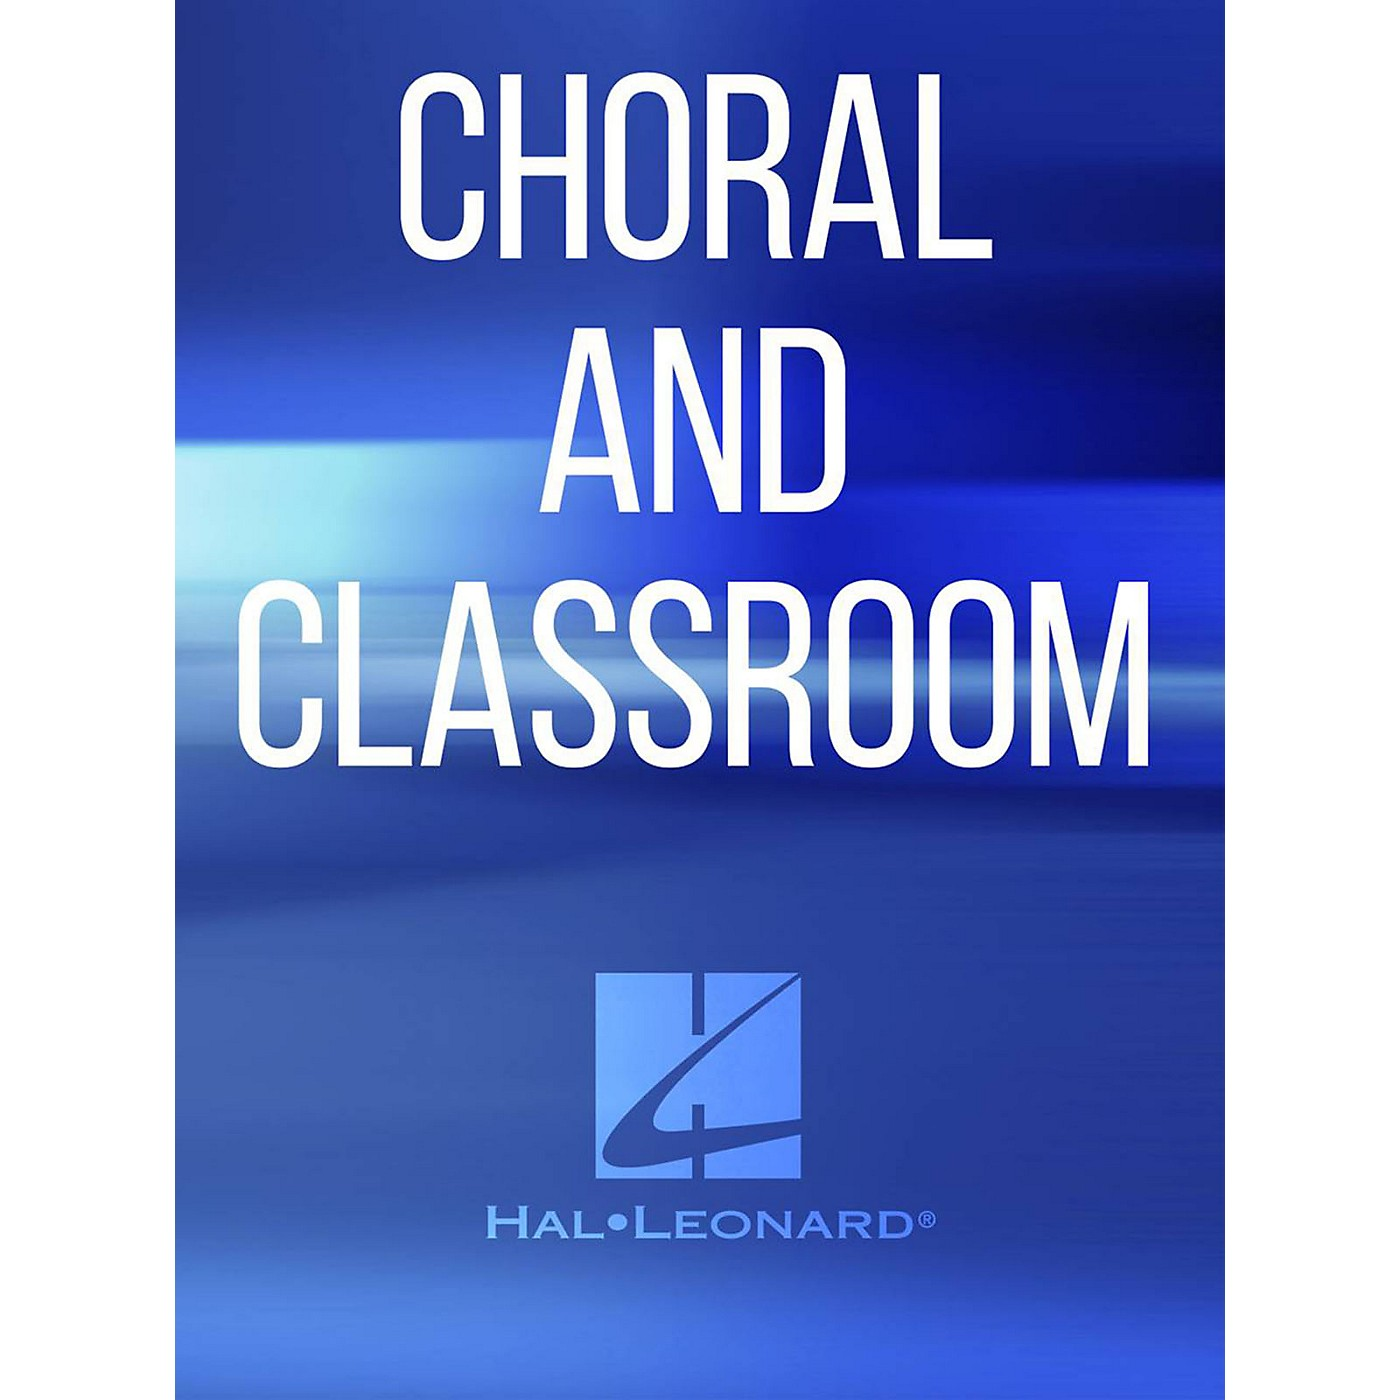 Hal Leonard Never Doubt My Love SATB Composed by James McCray thumbnail